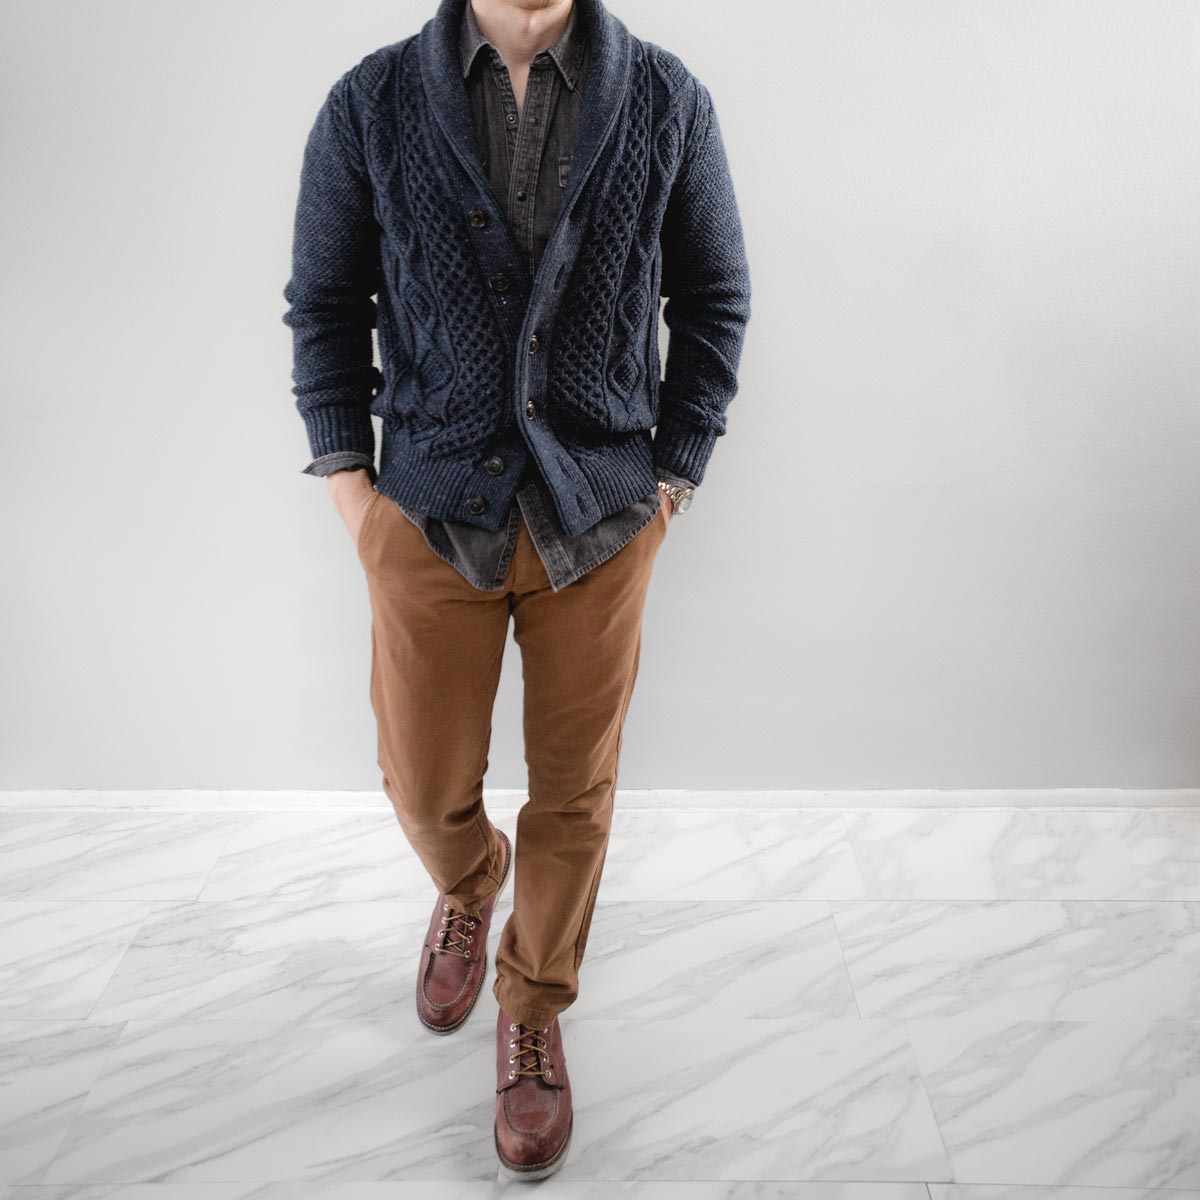 men shawl cardigan sweater denim shirt chinos red wing moc toe boots outfit ideas